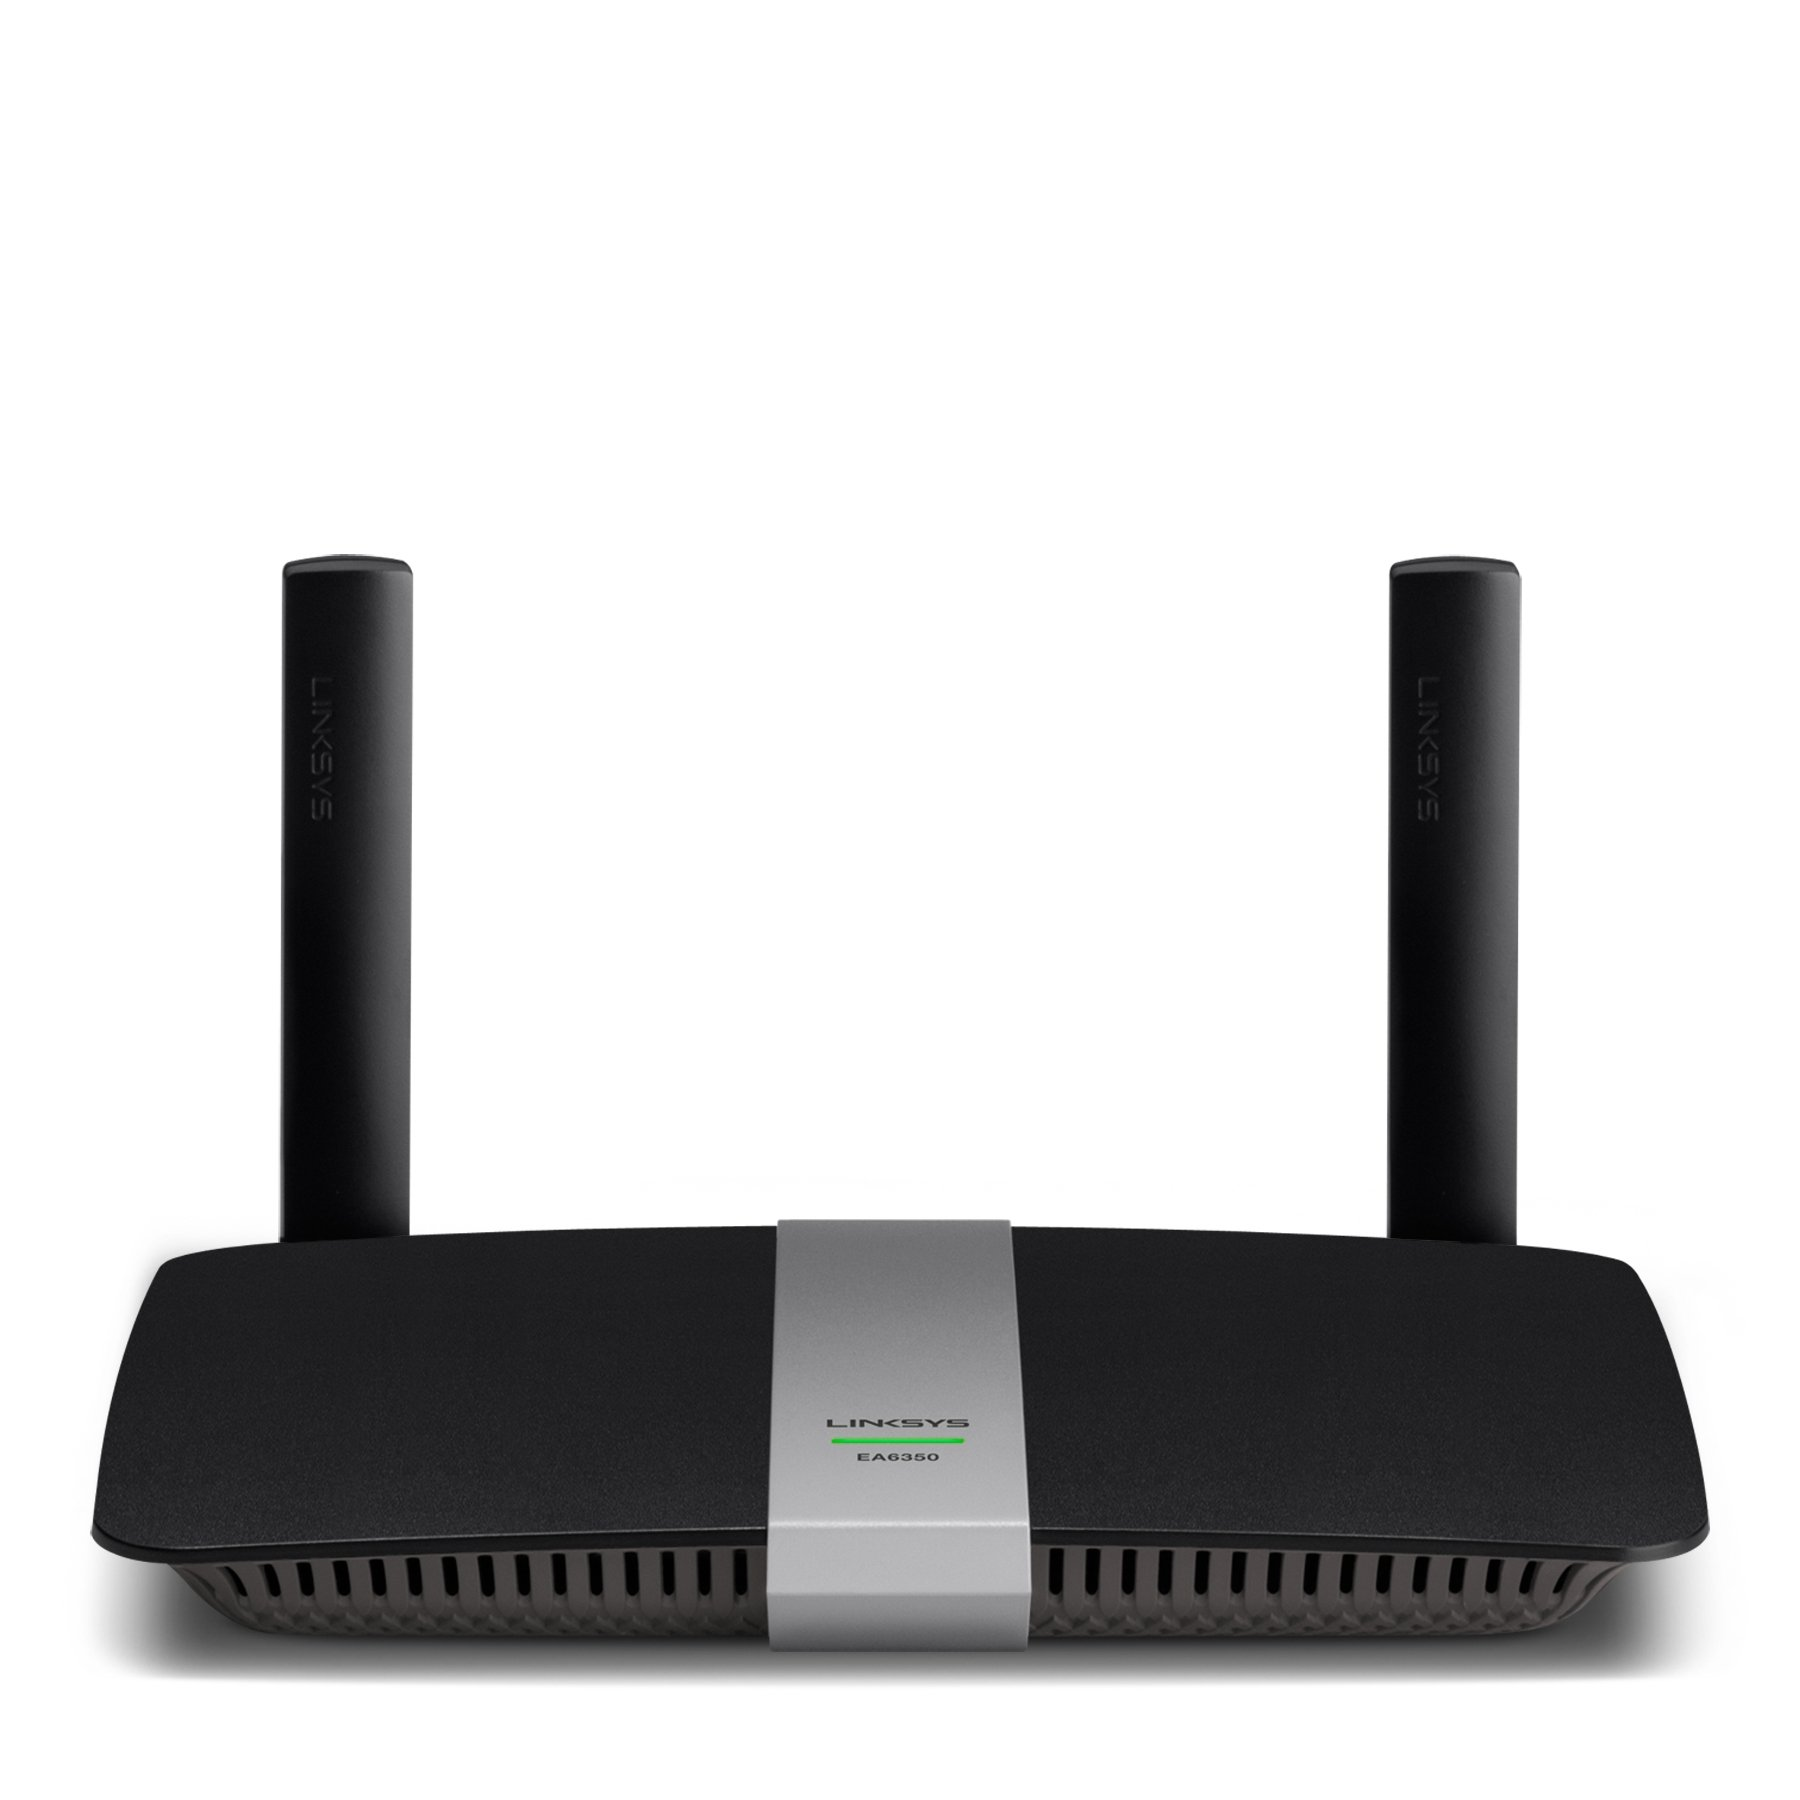 Linksys Dual-Band WiFi Router for Home (AC1200 Fast Wireless Router) by Linksys